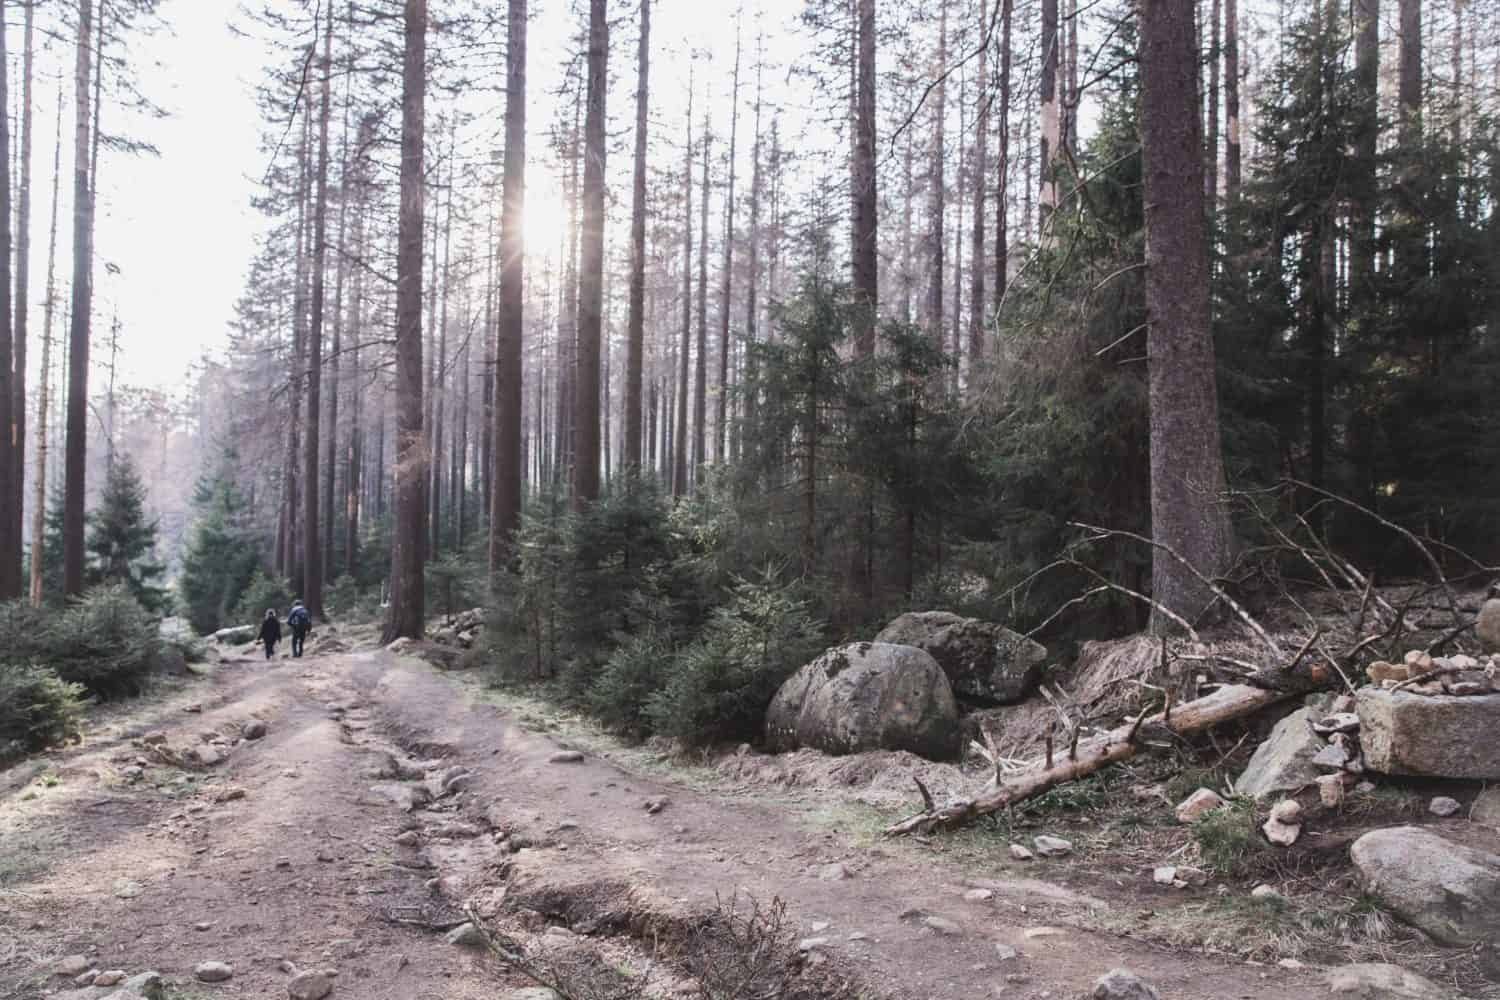 Hiking down from Brocken on a trail in the Harz Mountains in Harz National Park. Harz is one of the possible day trips from Hamburg!